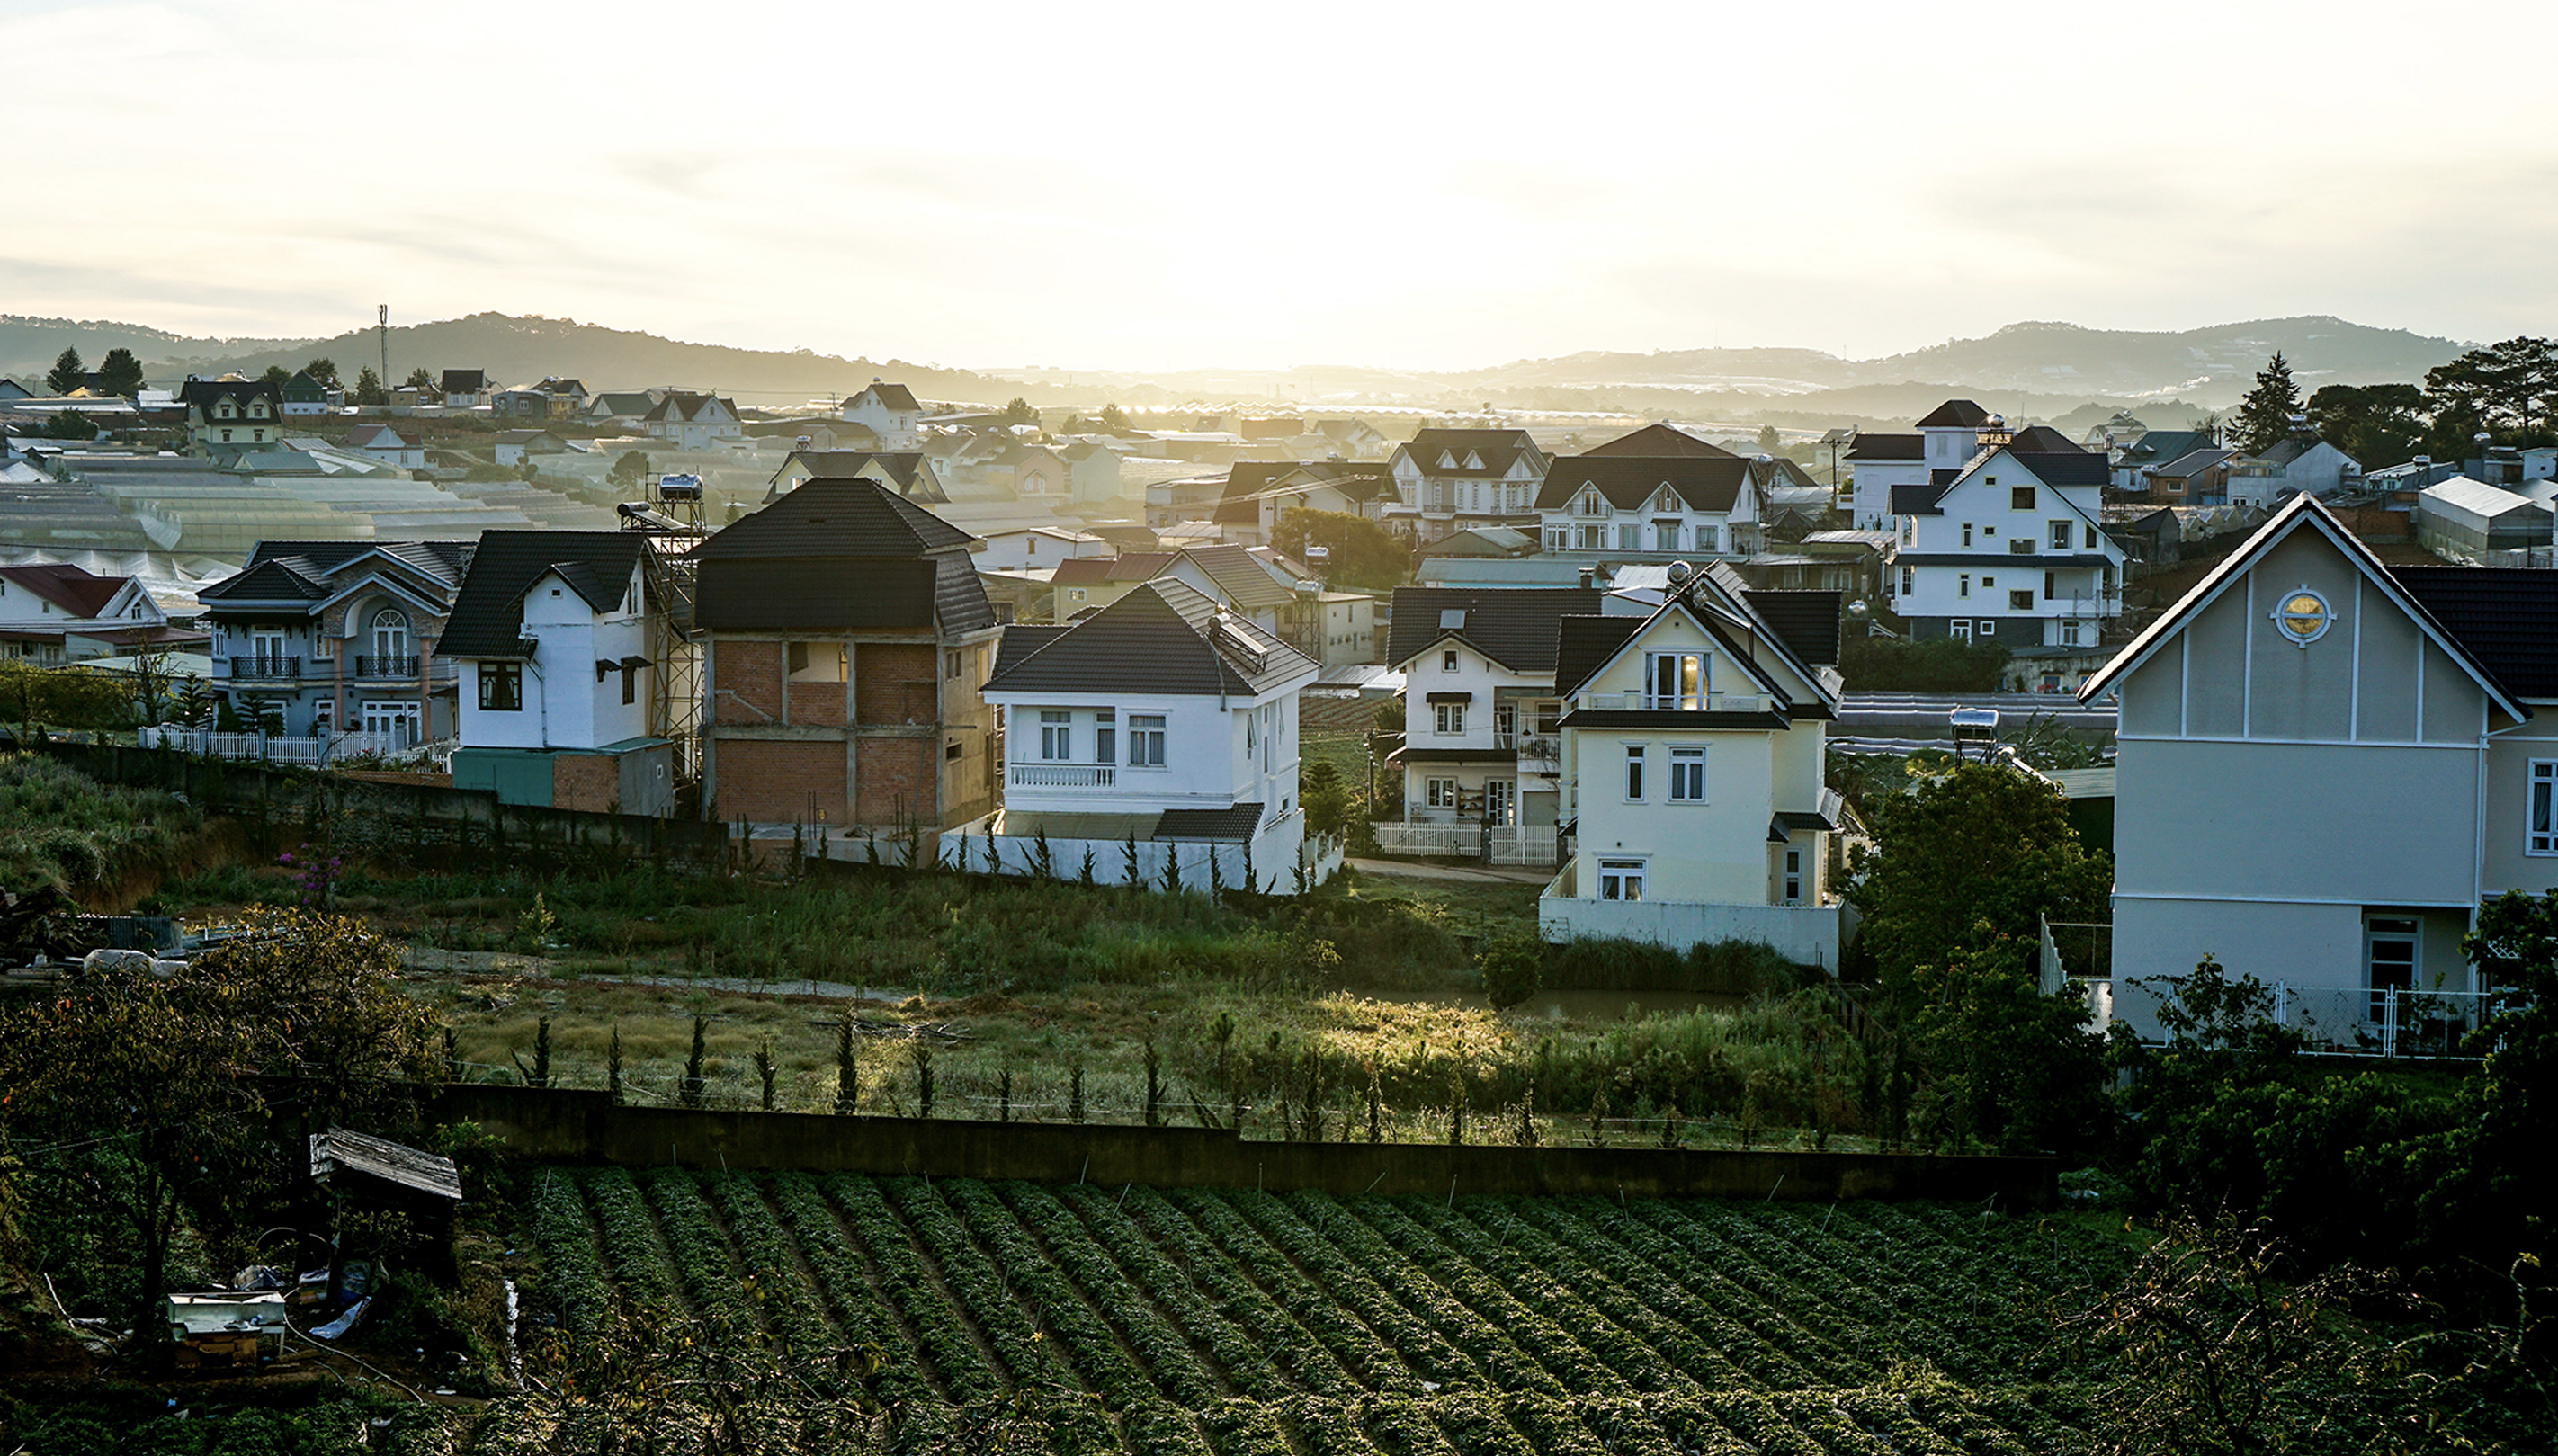 DALAT | A REFRESHING CITY IN THE CENTER OF VIETNAM